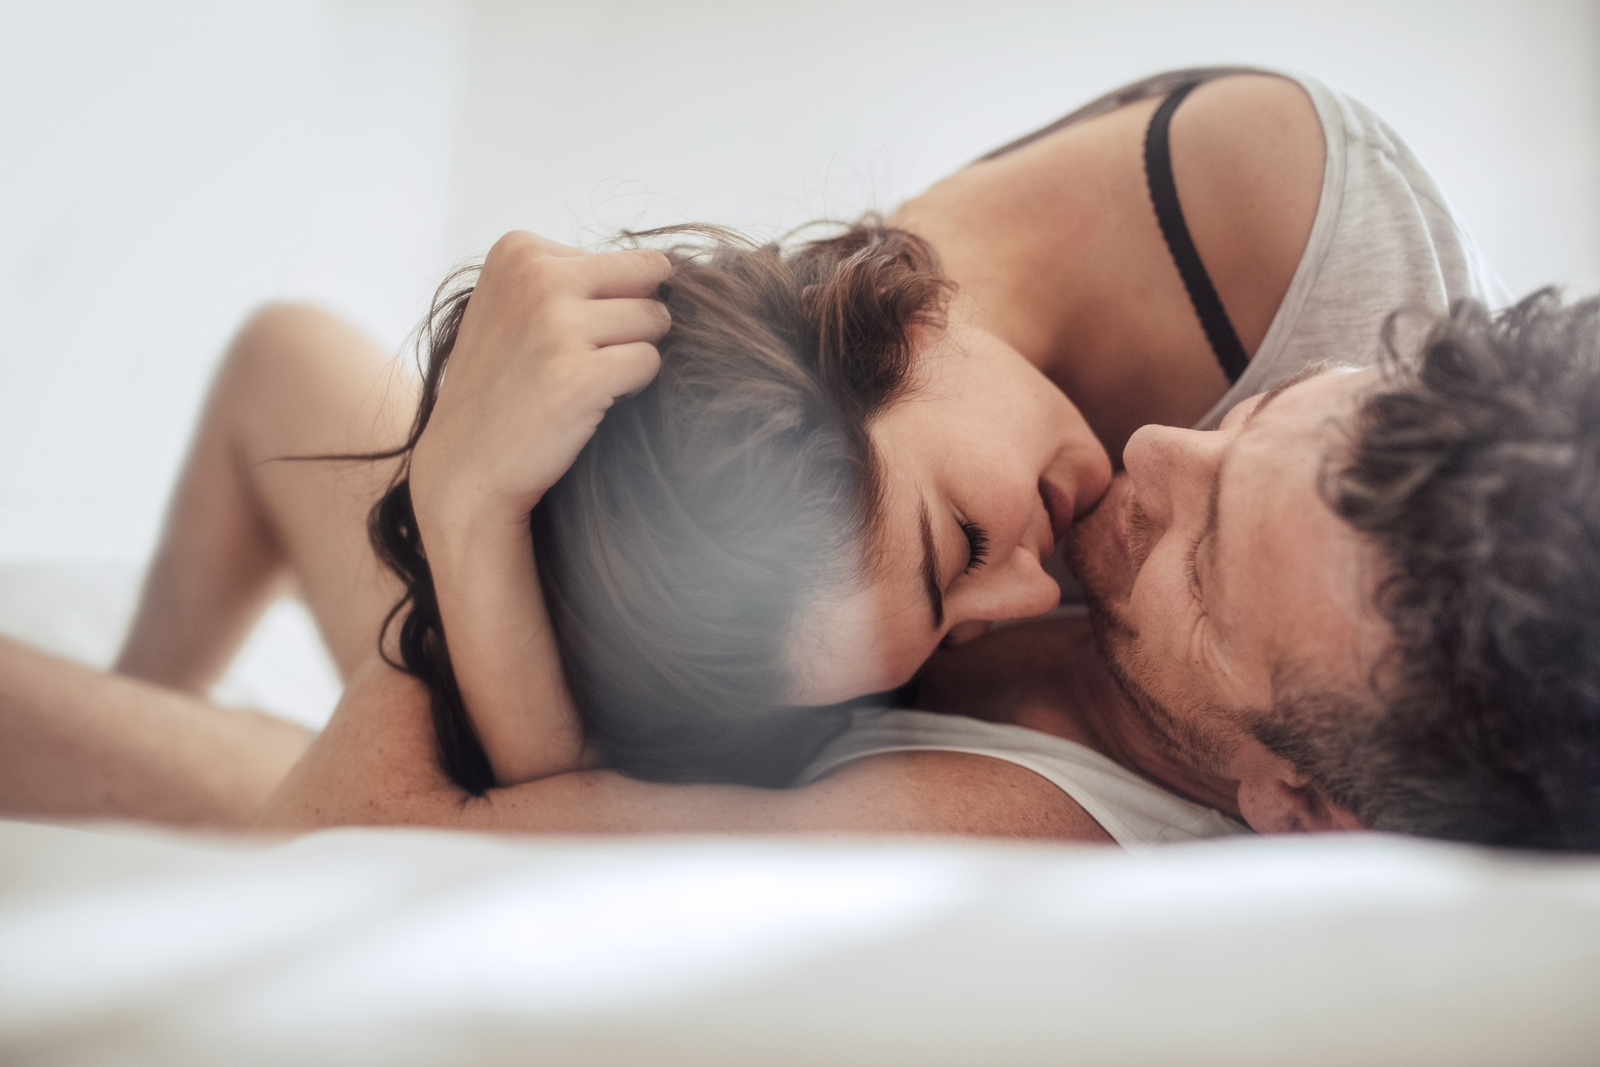 bigstock-Young-Couple-Caressing-In-Bed-163589933